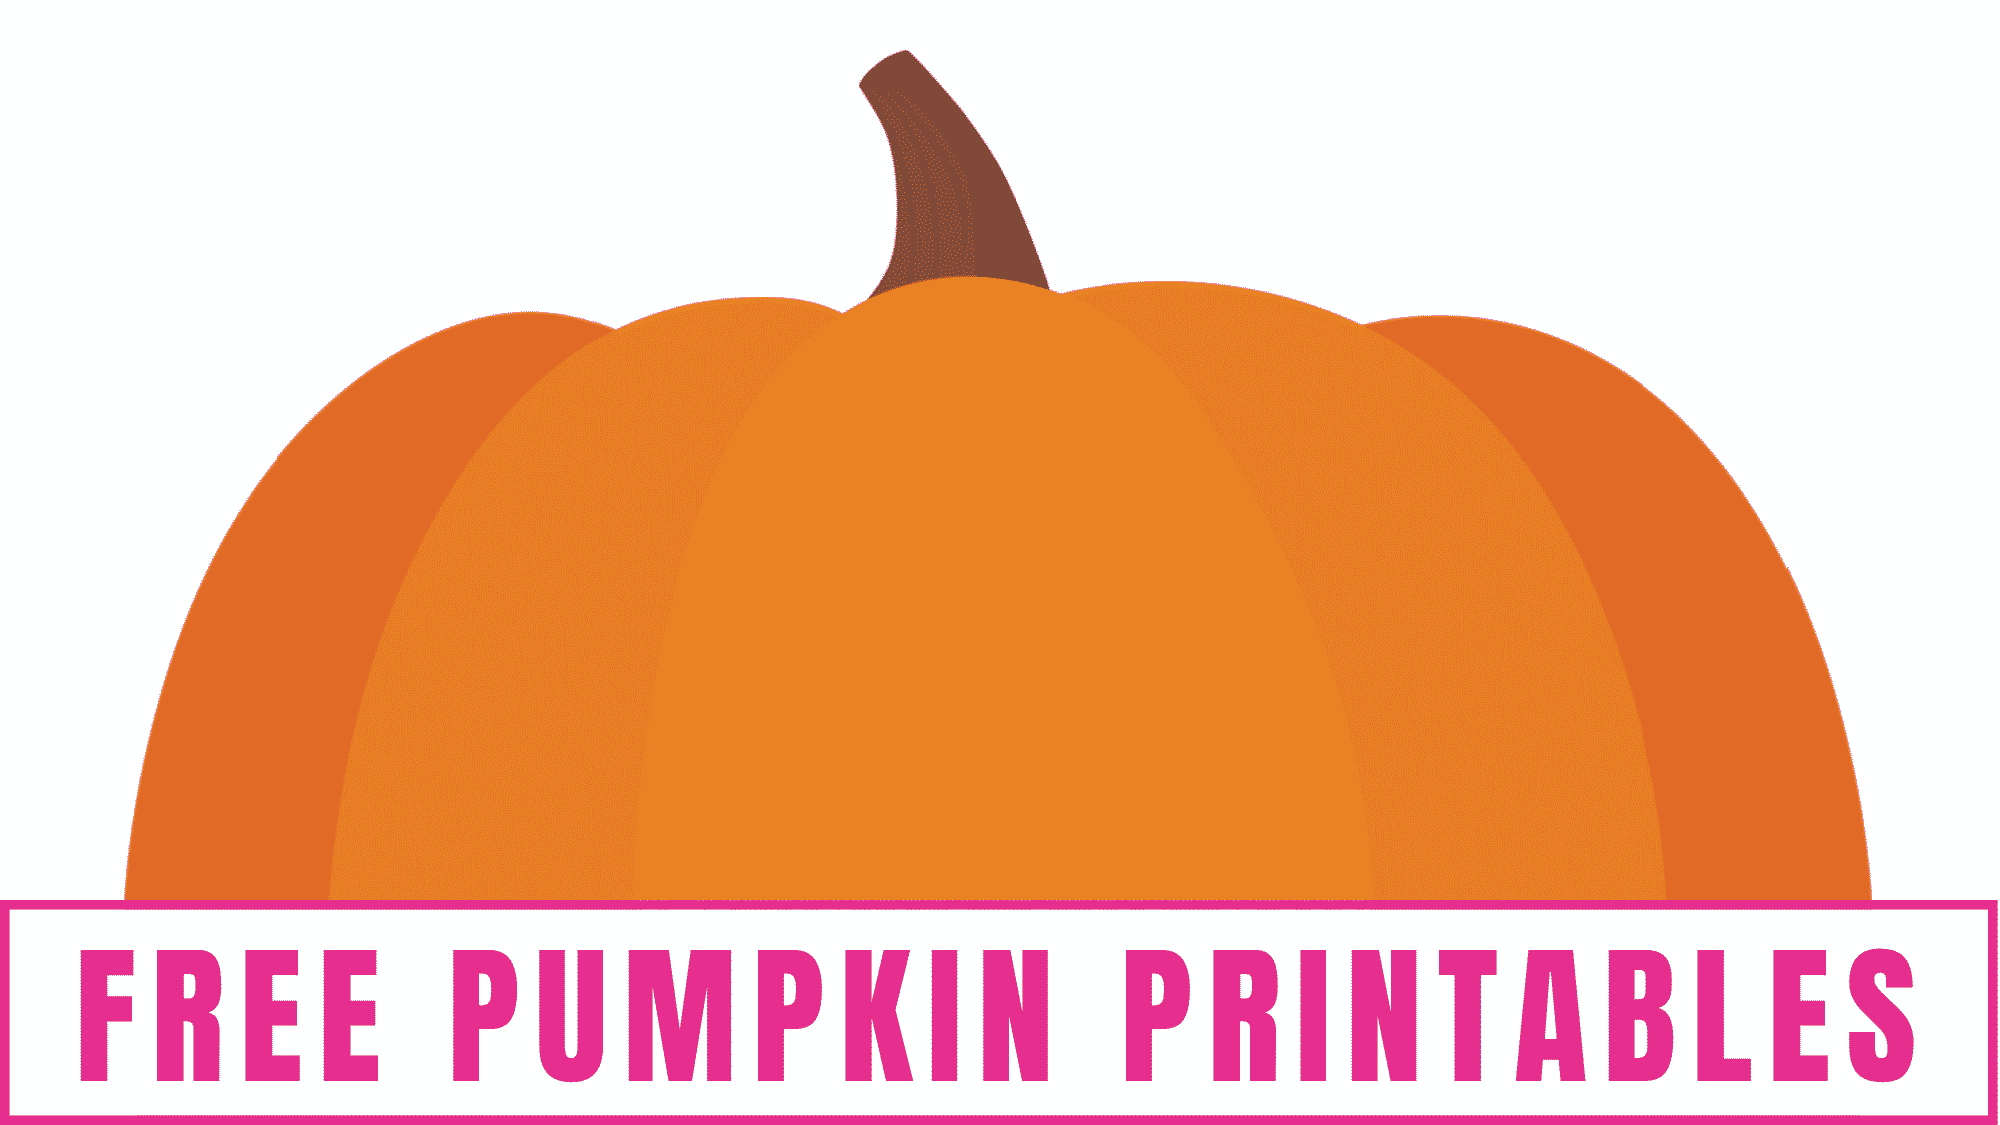 Need more Halloween sign printables? Have your kid decorate one of these  free pumpkin printables then hang it proudly to make DIY Halloween decorations.